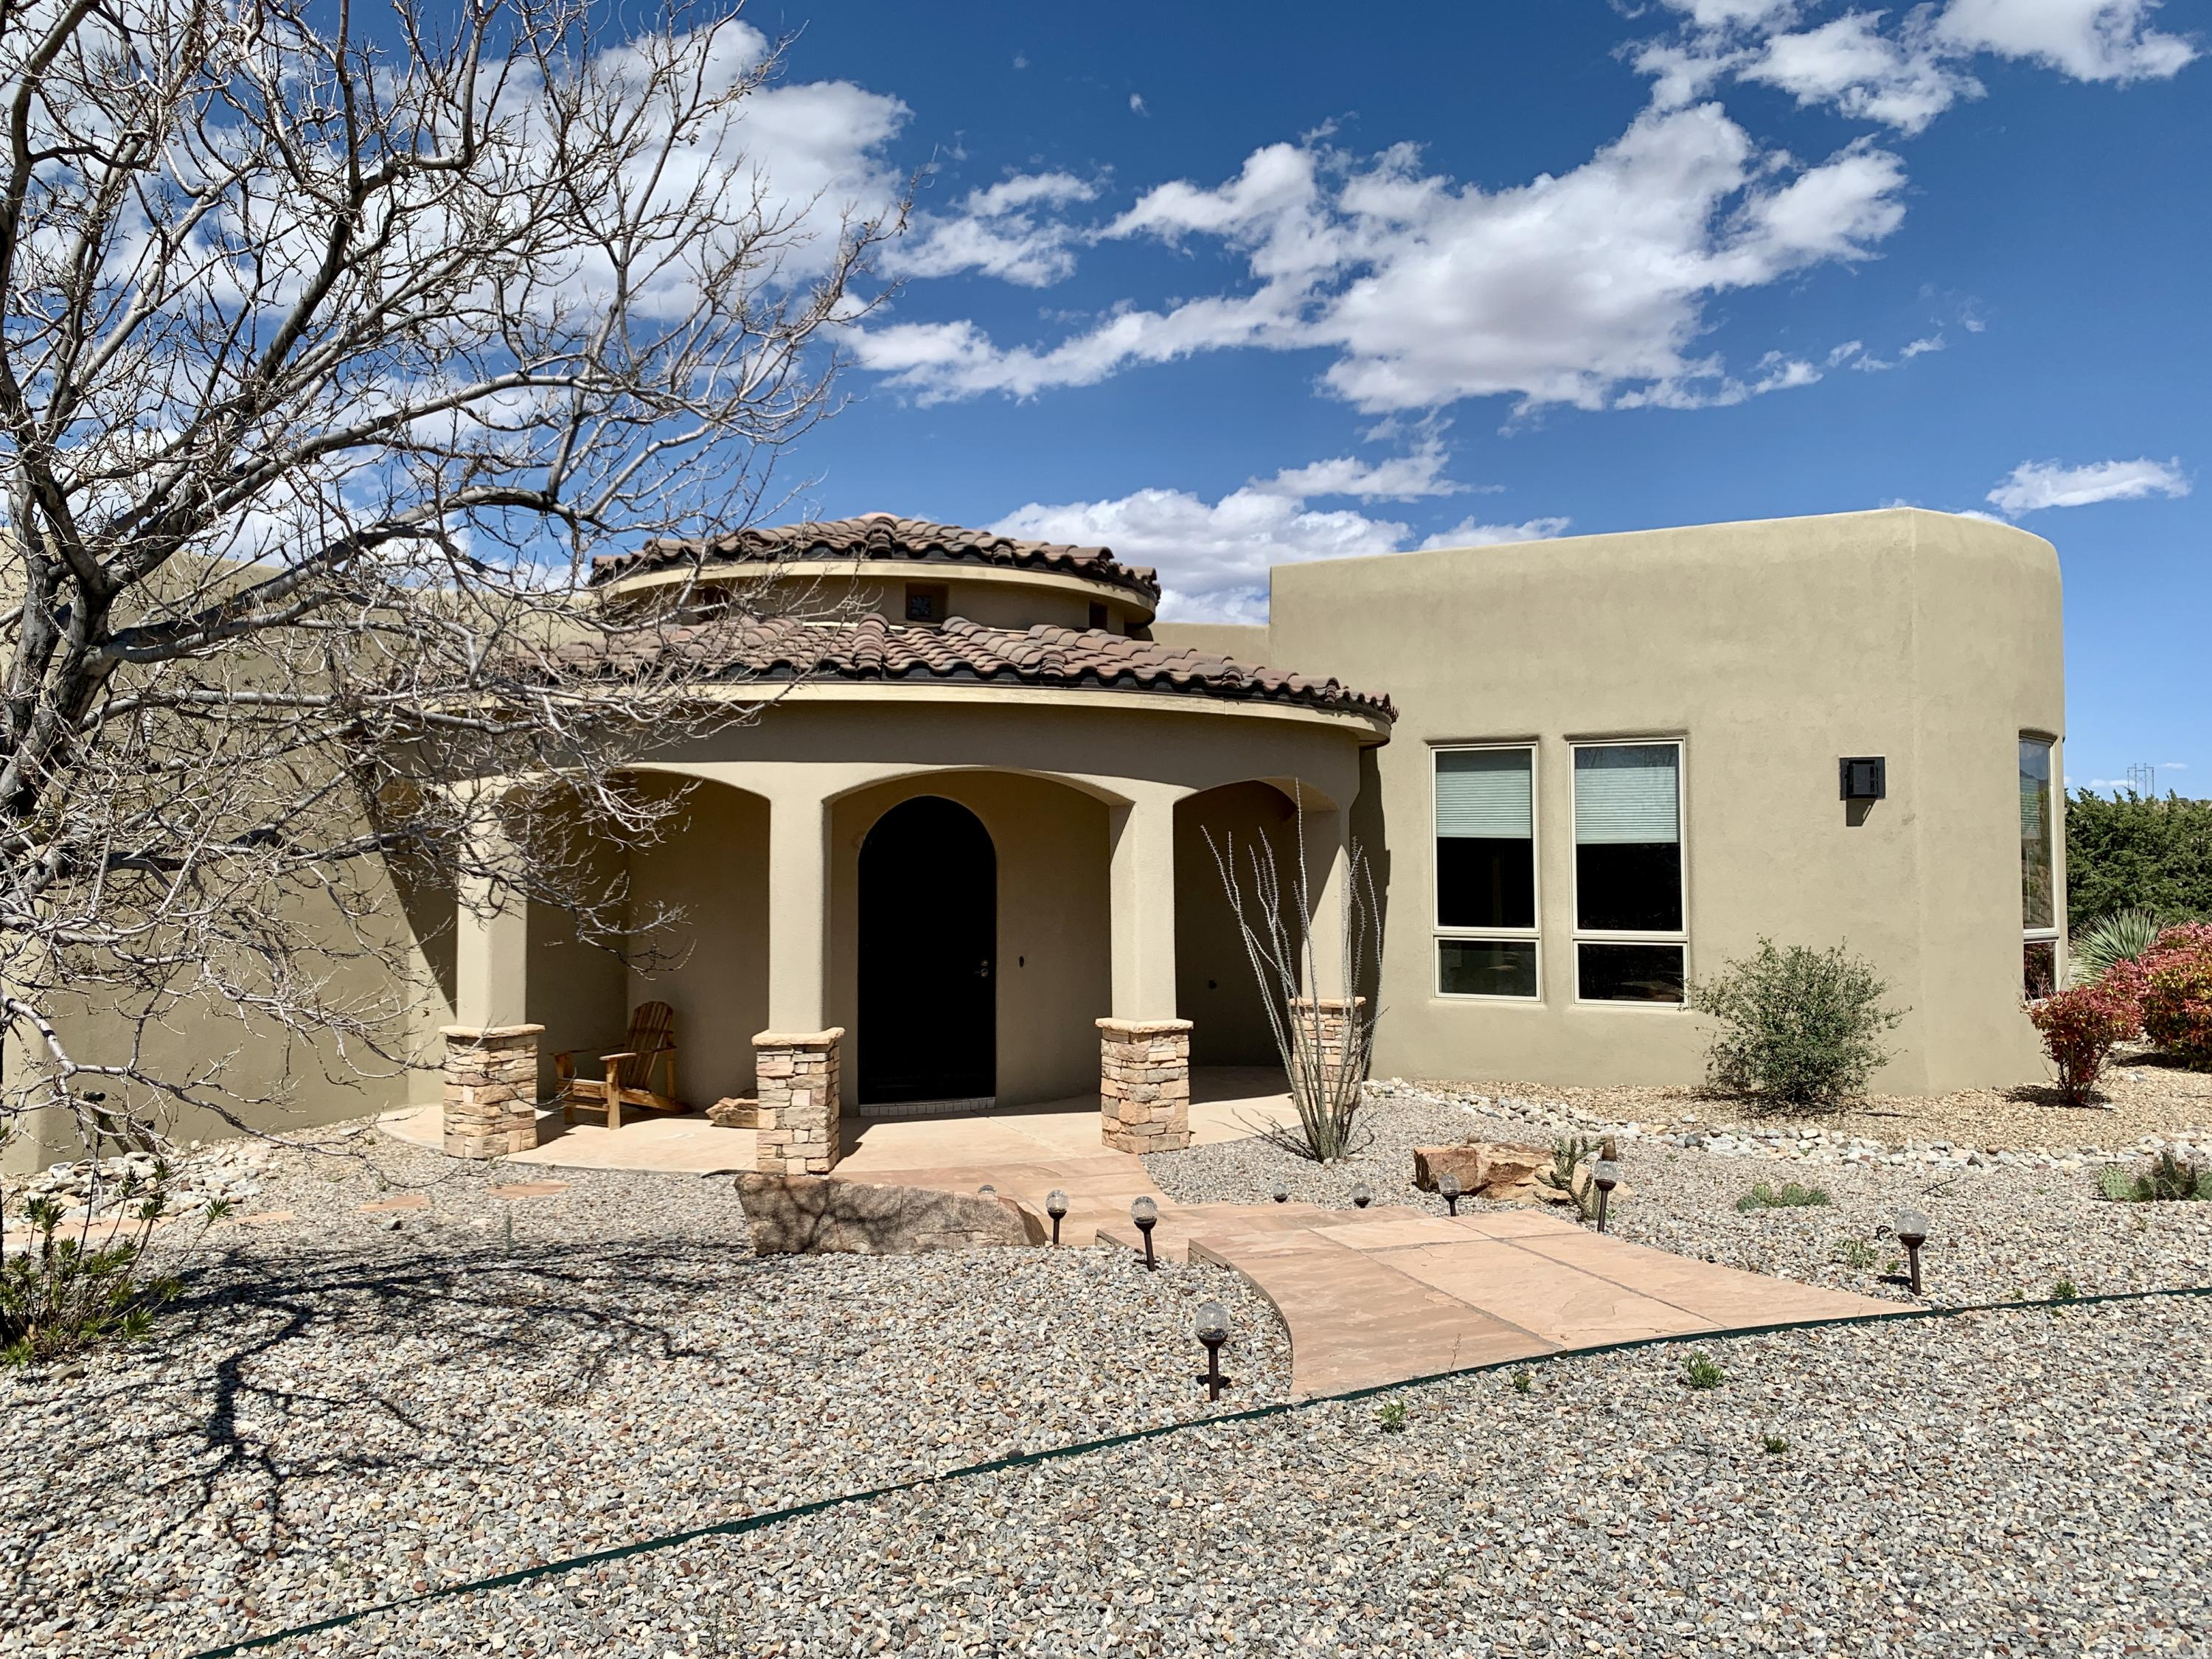 Price Reduced! Tranquility minutes from ABQ! Mountain and desert vistas from every window. SW and Old World architectural styles blended with current amenities. 3 BR + Office, 3 BA home. Gourmet center island kitchen w/ Thermador appliances, full-size range + built-in oven, wine fridge, prep area + sink, 2 dishwashers, custom dry bar + more. Finishes include Diamond Plaster, Travertine and tile throughout. Natural light and stacked stone highlight the deep spa tub and all-tile shower in the master suite. Perfect for 4 season outdoor living w/ stone fire pit, hot tub + shade trees. Grow your own food in the backyard orchard of mature, fruit-bearing trees (peaches, plums, nectarine, apple) fully-automated irrigation system. Newly repainted Great room and Master Bed/Bath See Virtual Tour